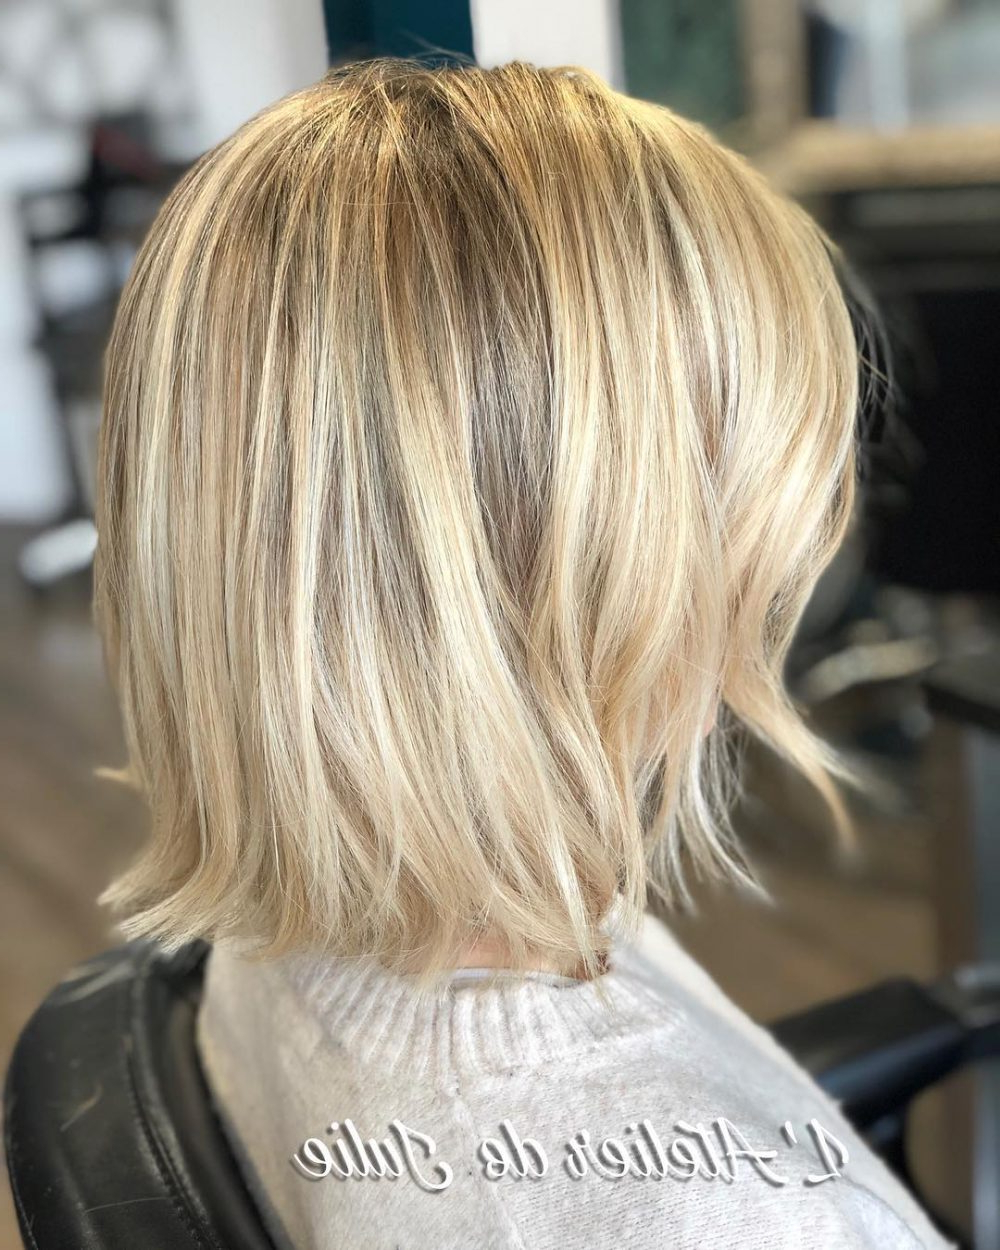 34 Perfect Short Haircuts And Hairstyles For Thin Hair (2018) For Trendy Short Haircuts For Fine Hair (View 21 of 25)